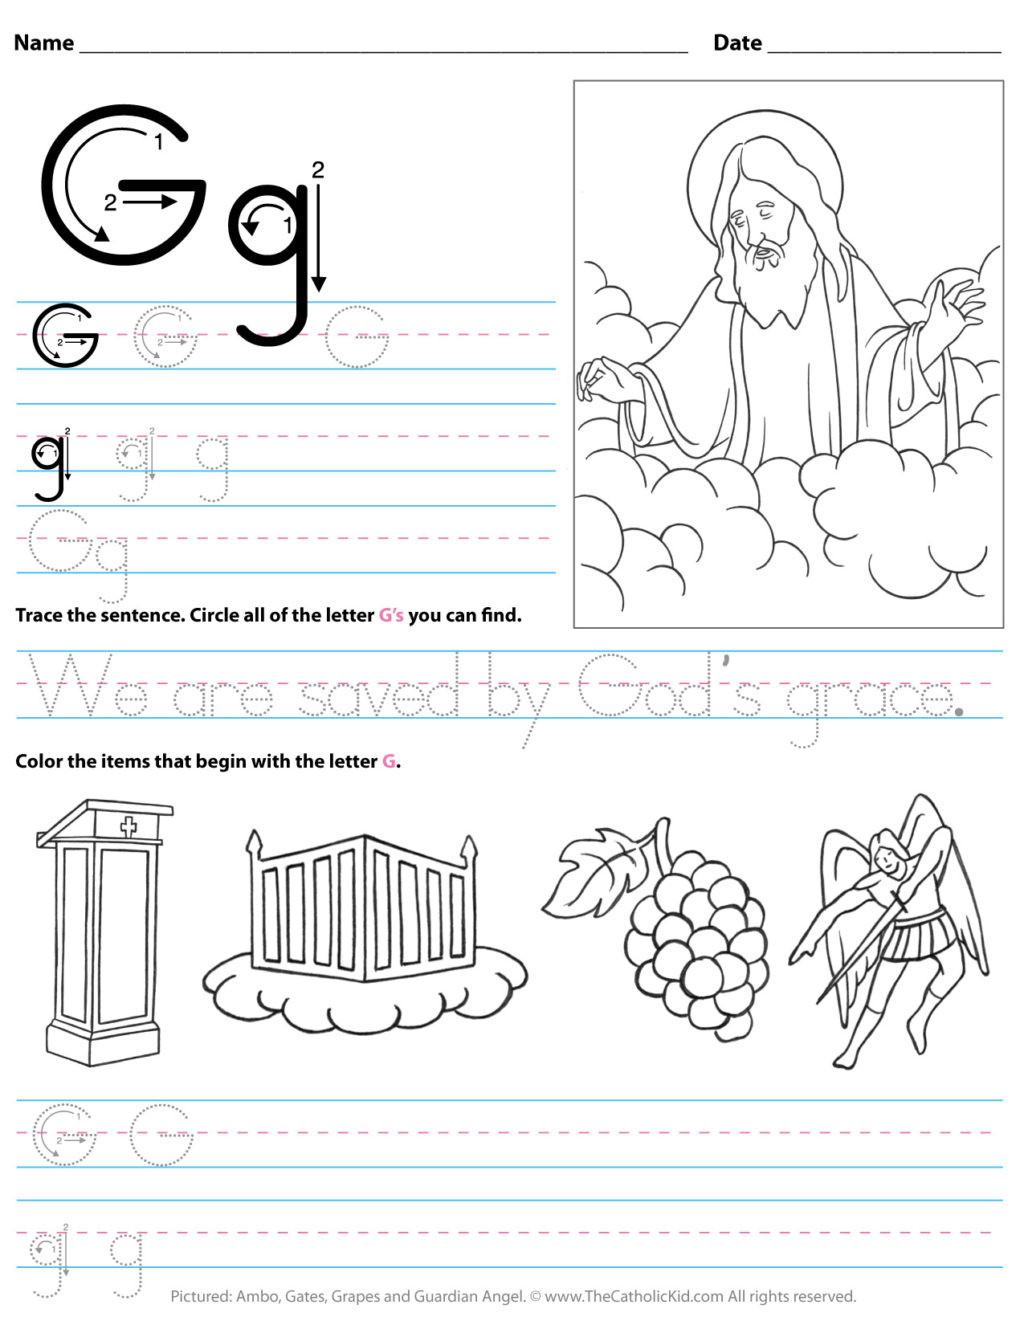 G Worksheets for Preschool Worksheet Staggering I Worksheets for Preschool Worksheet